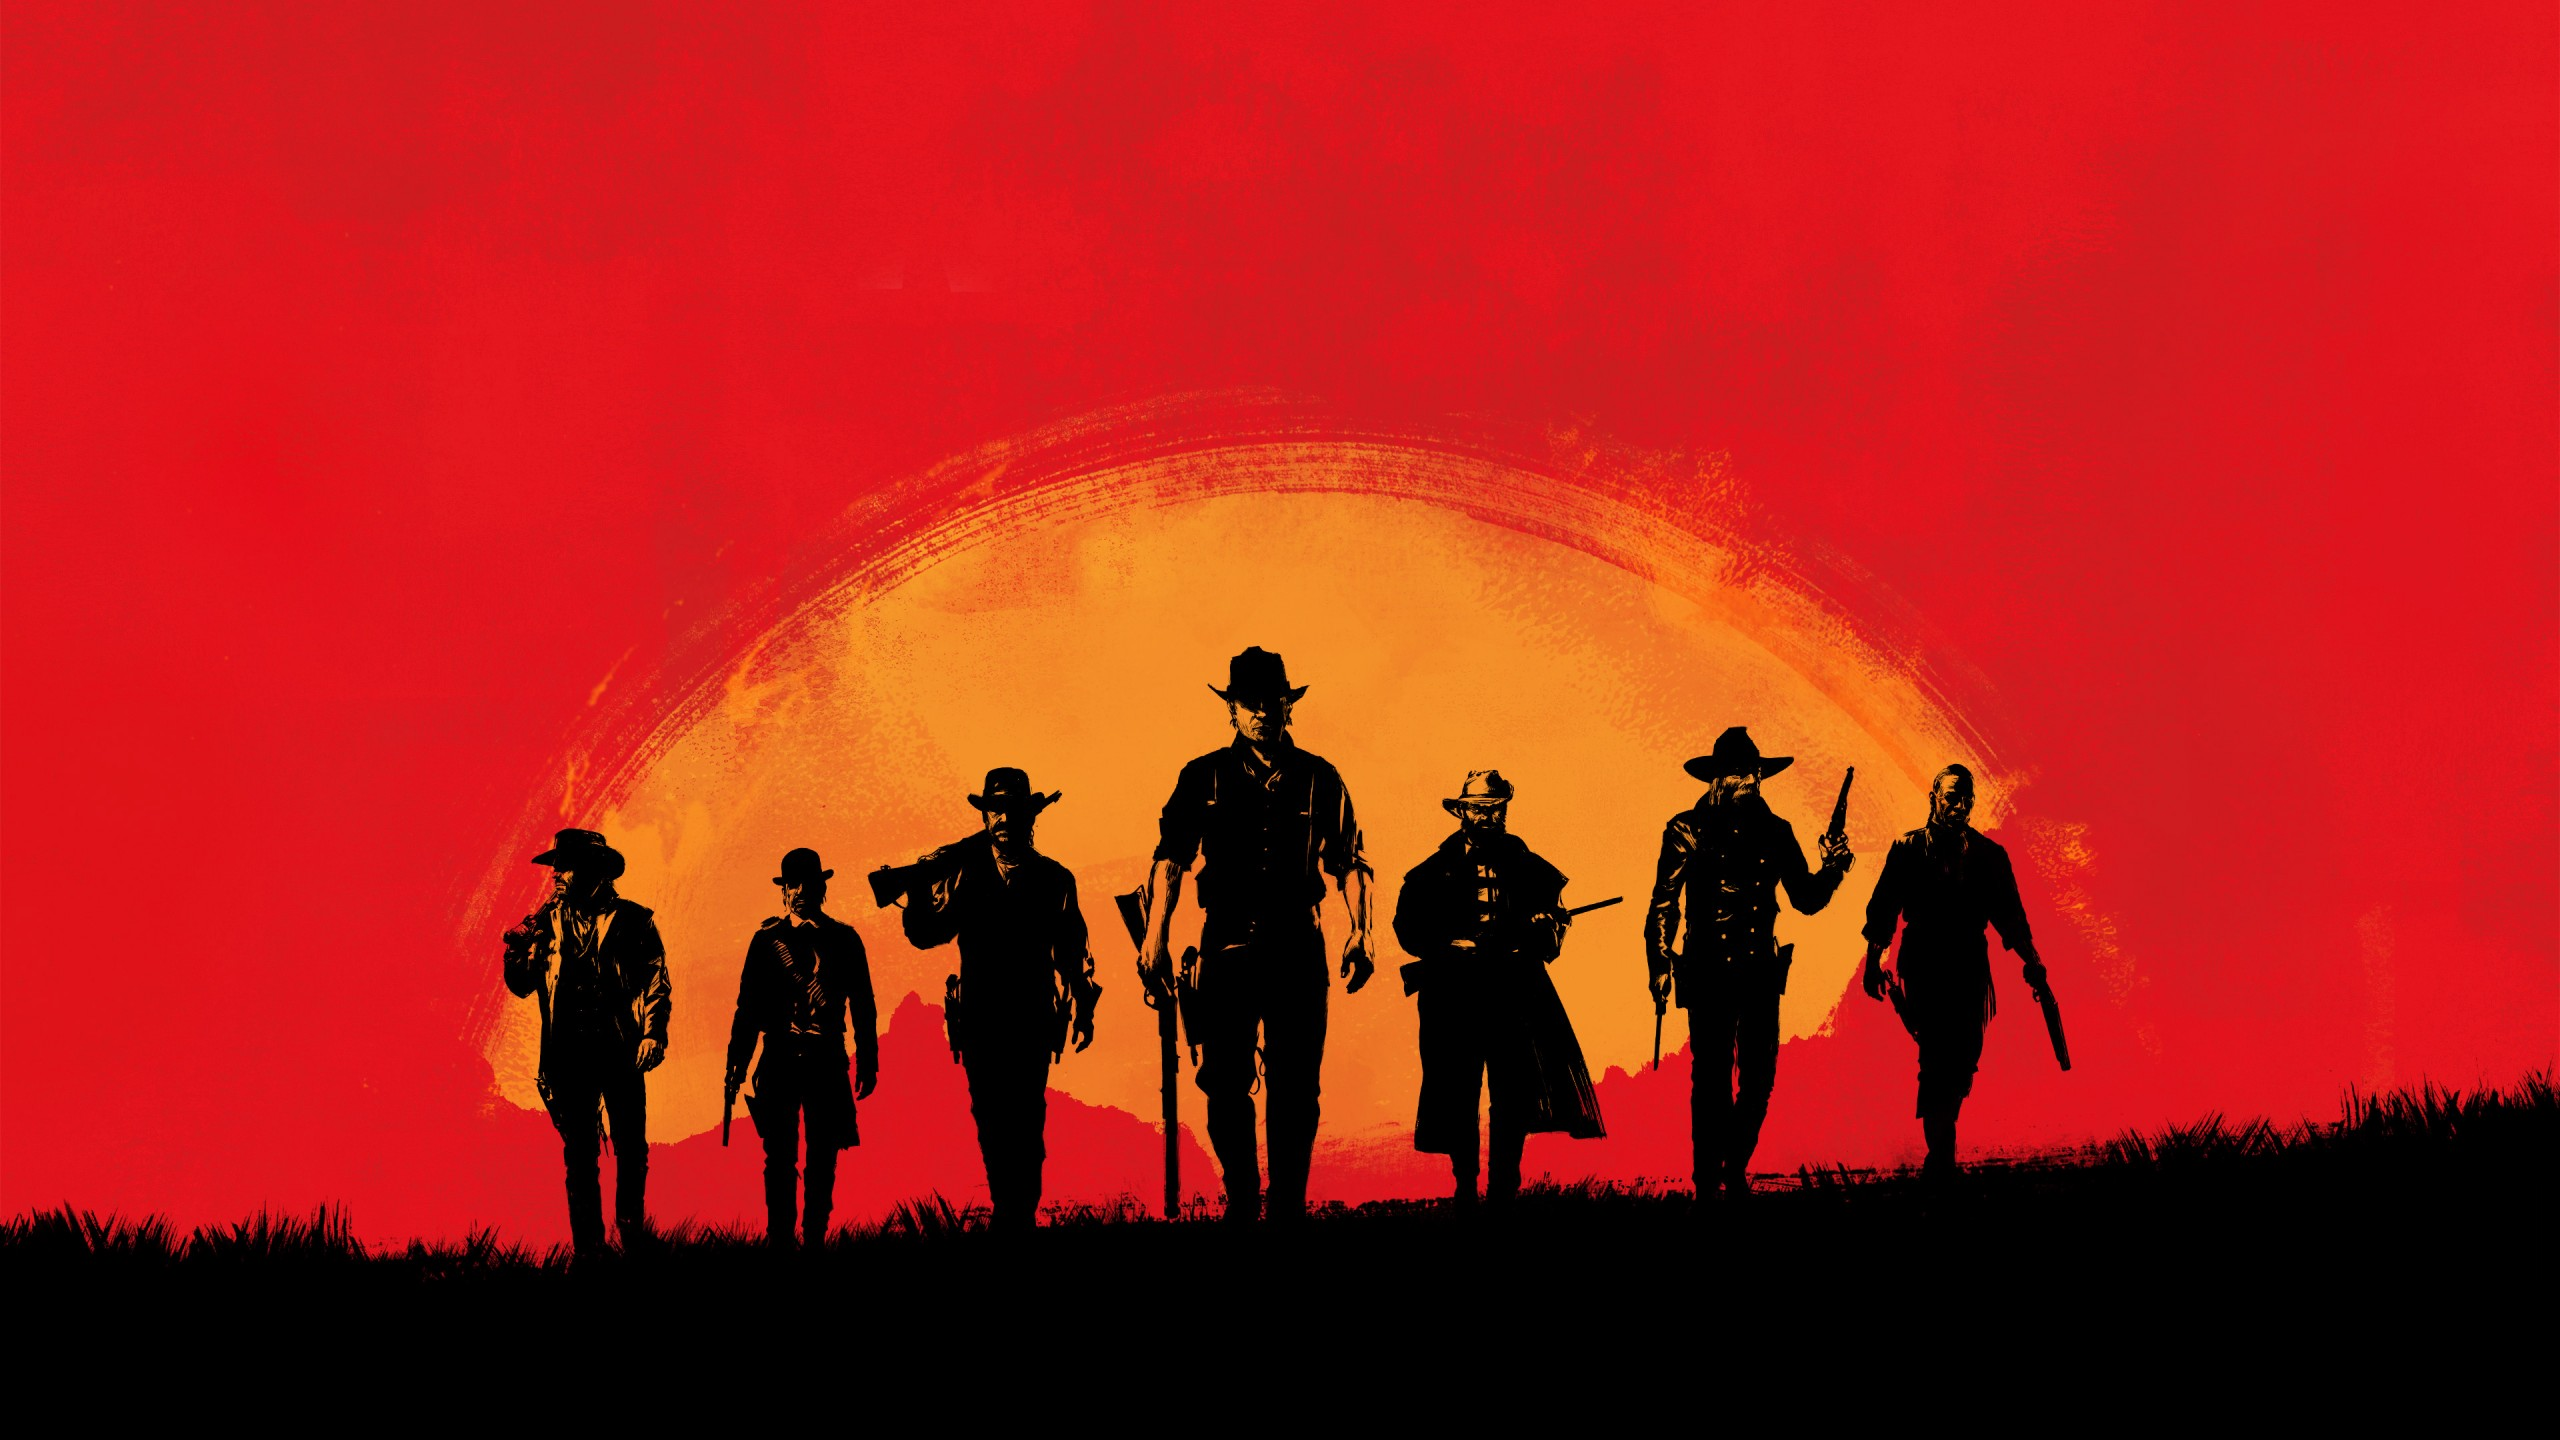 O hype para Red Dead Redemption 2